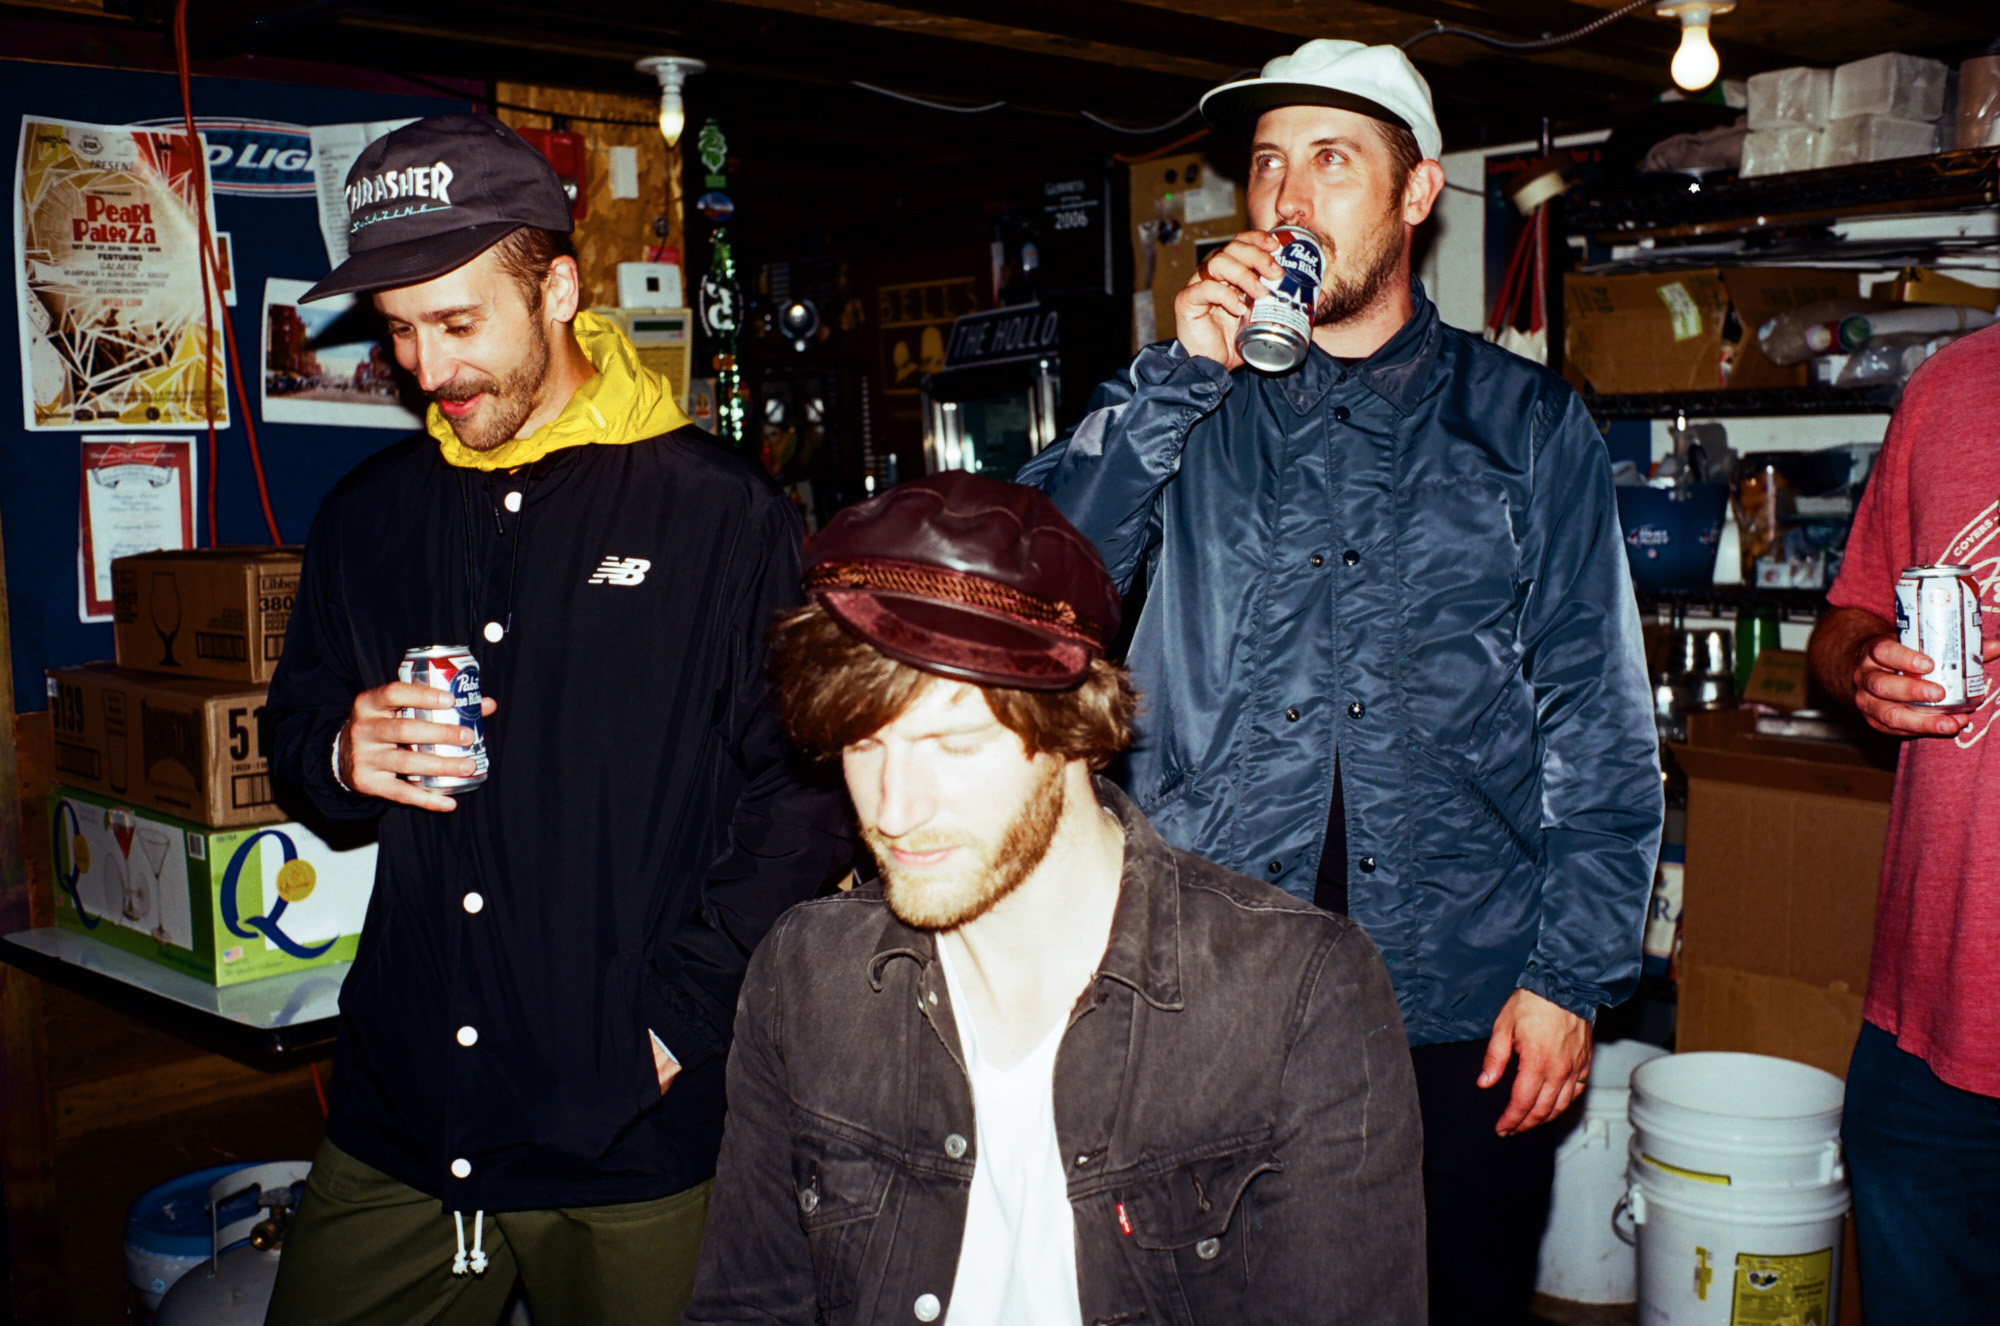 Le groupe Portugal the Man.